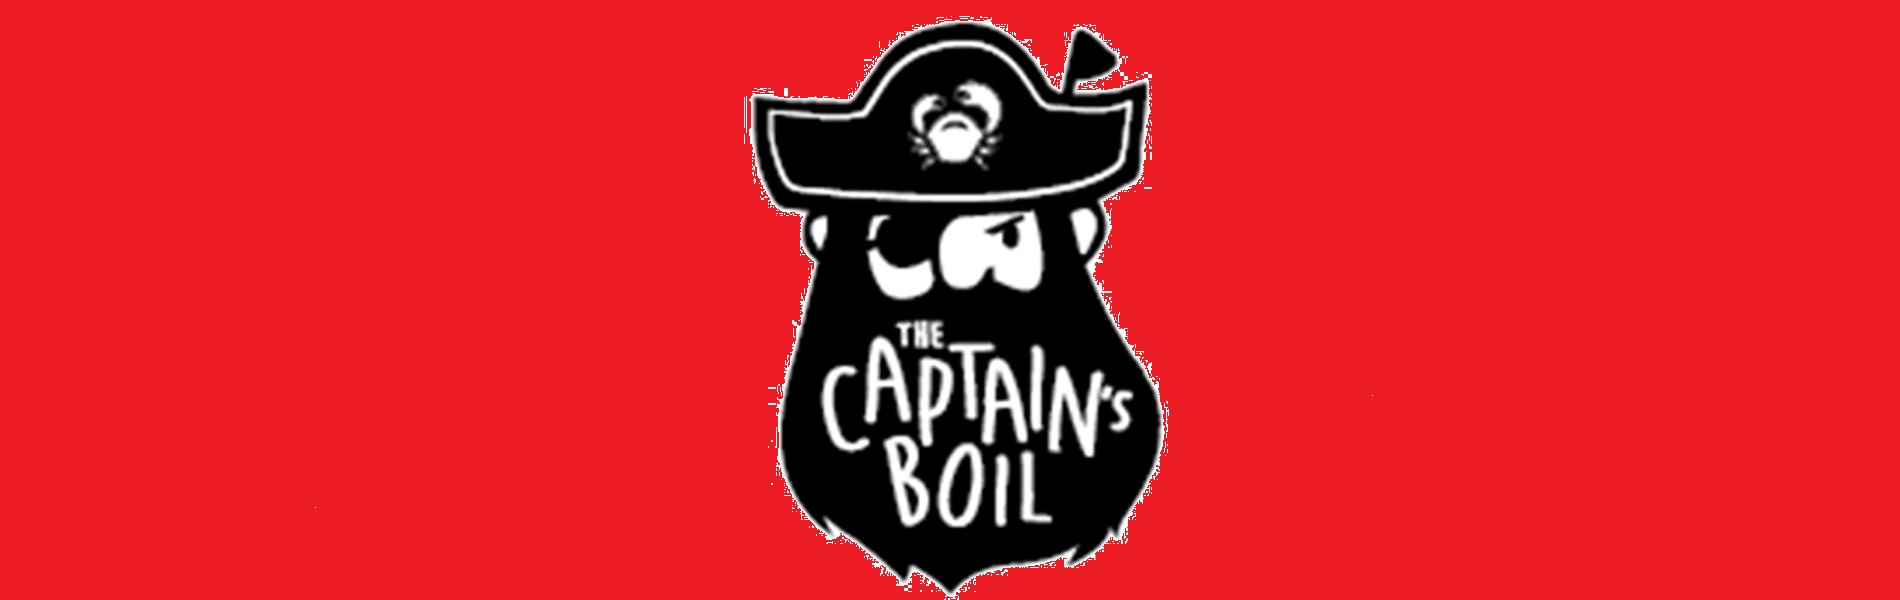 The Captain's Boil Restaurant (Coquitlam)